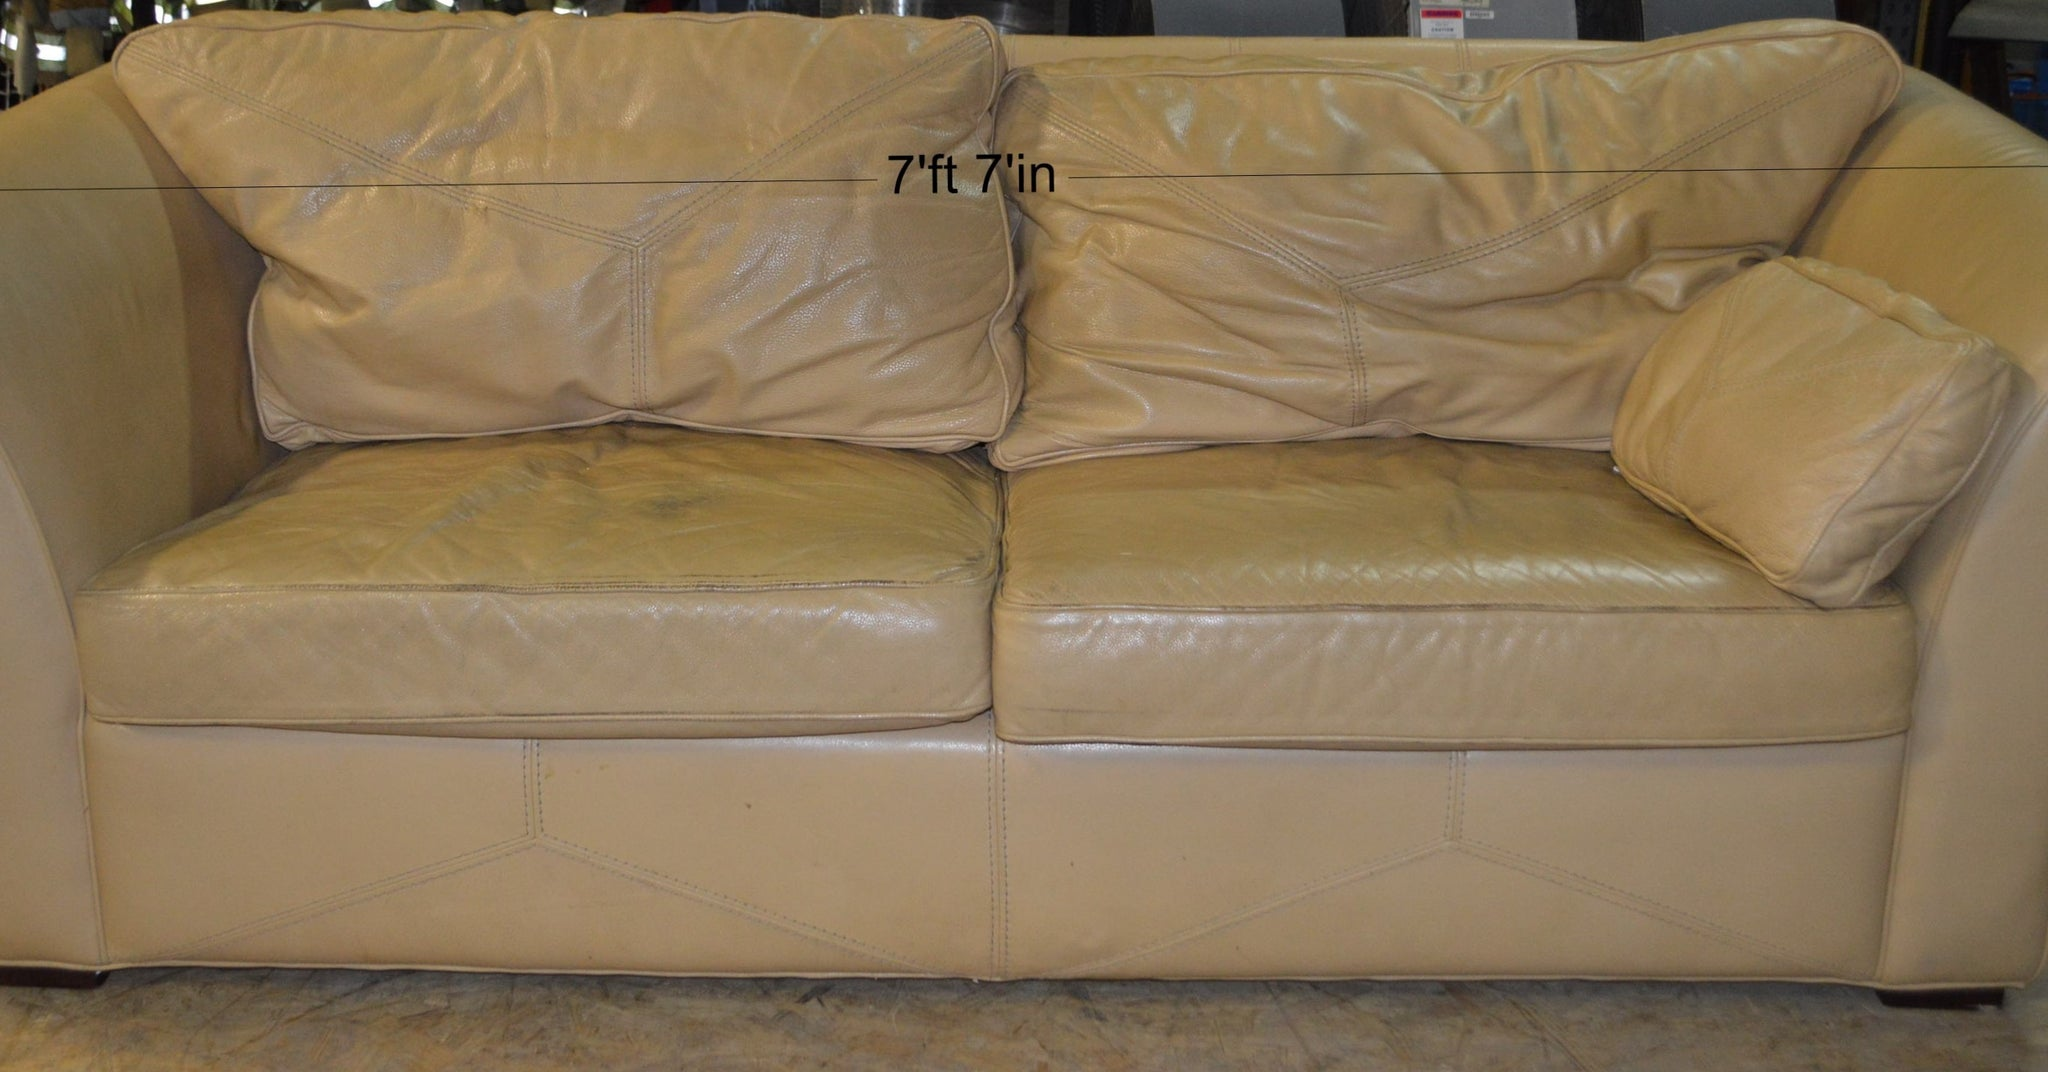 Terrific Mid Century Tan Leather Couch Northside Prop Stage Film Beatyapartments Chair Design Images Beatyapartmentscom